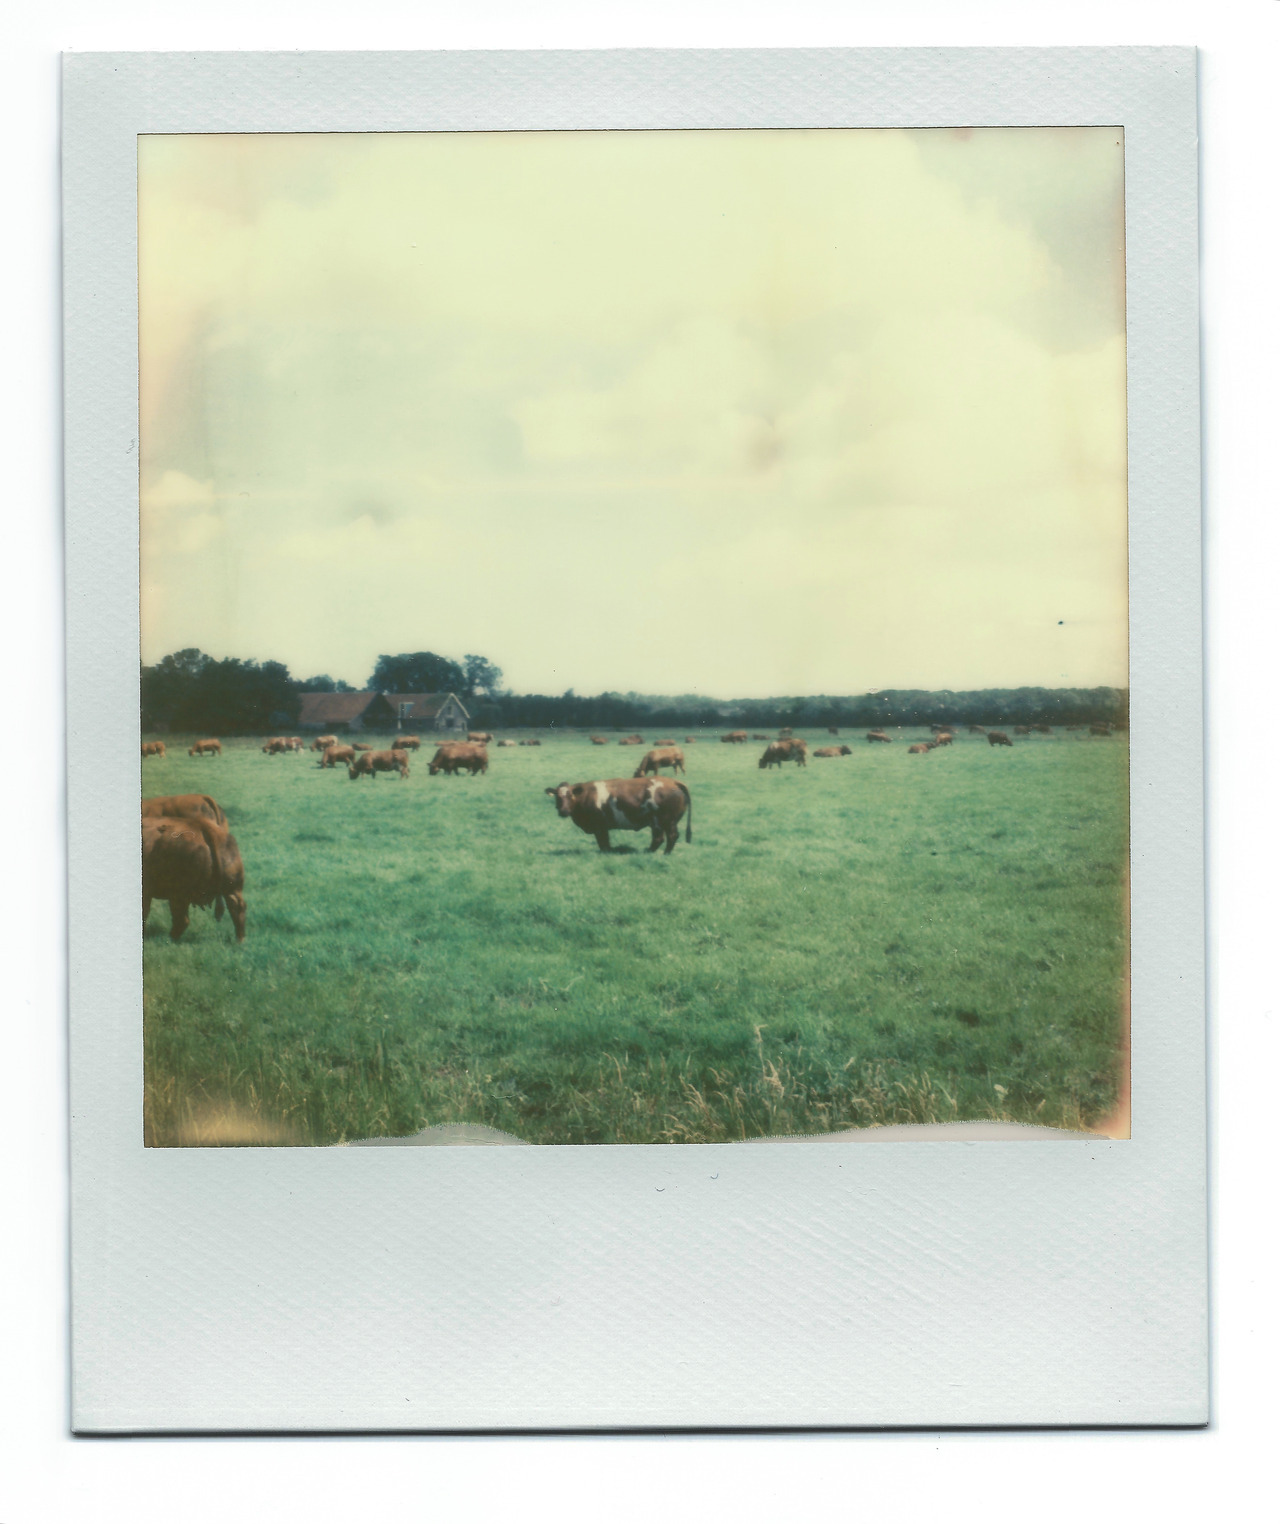 Holy Cow! with PX70 Film (by skinnypictures)